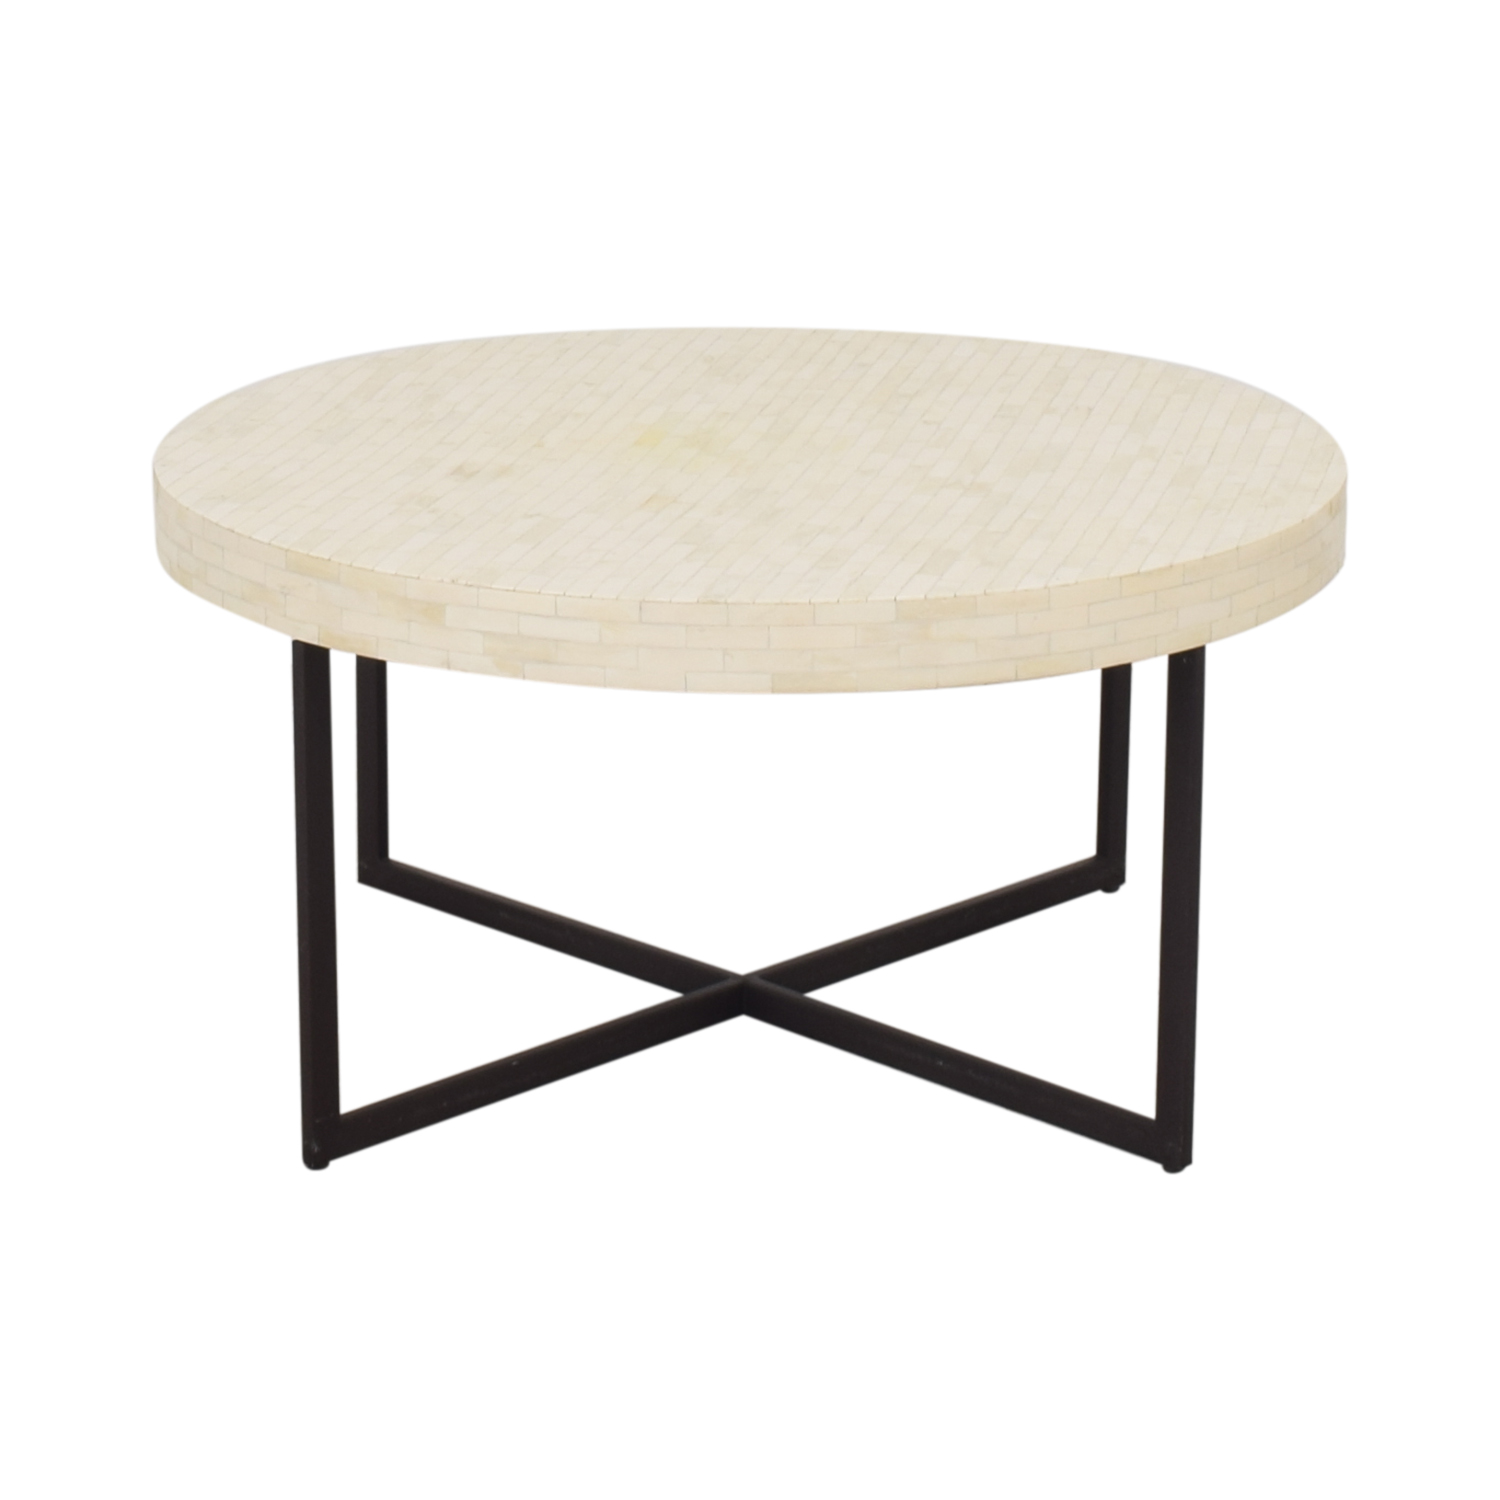 West Elm West Elm Bone Coffee Table nyc